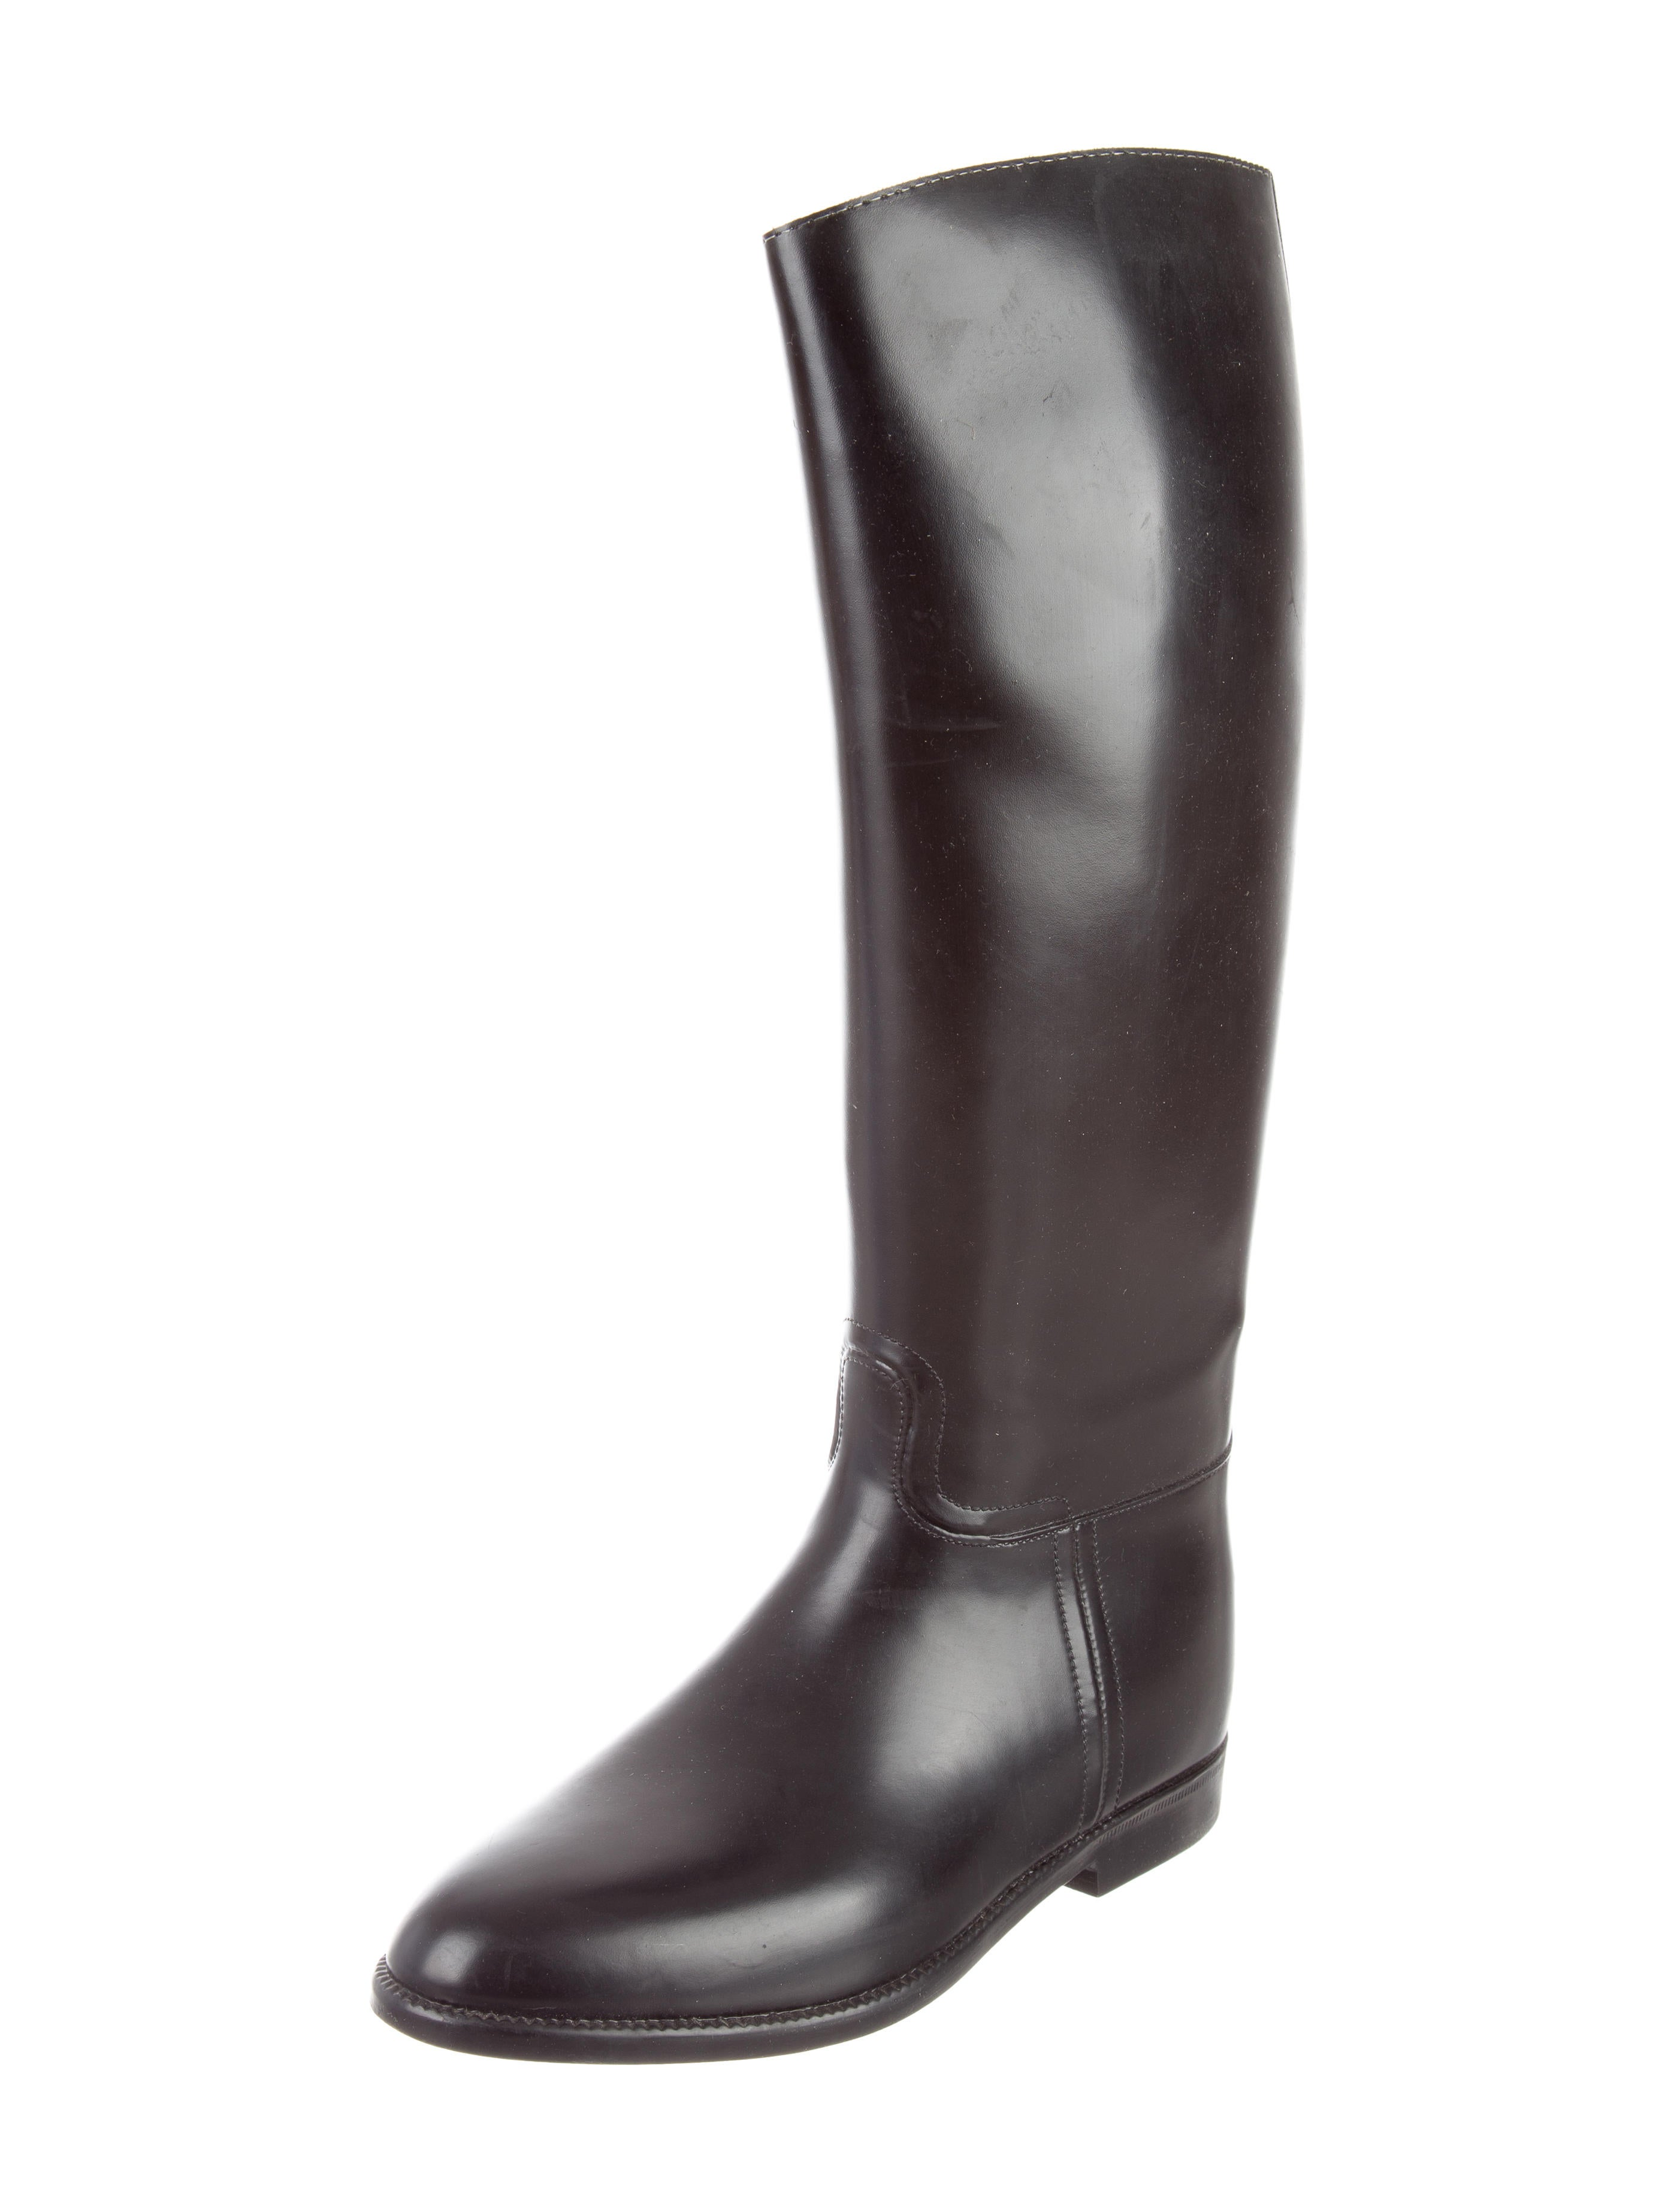 aigle leather boots shoes w8g20015 the realreal